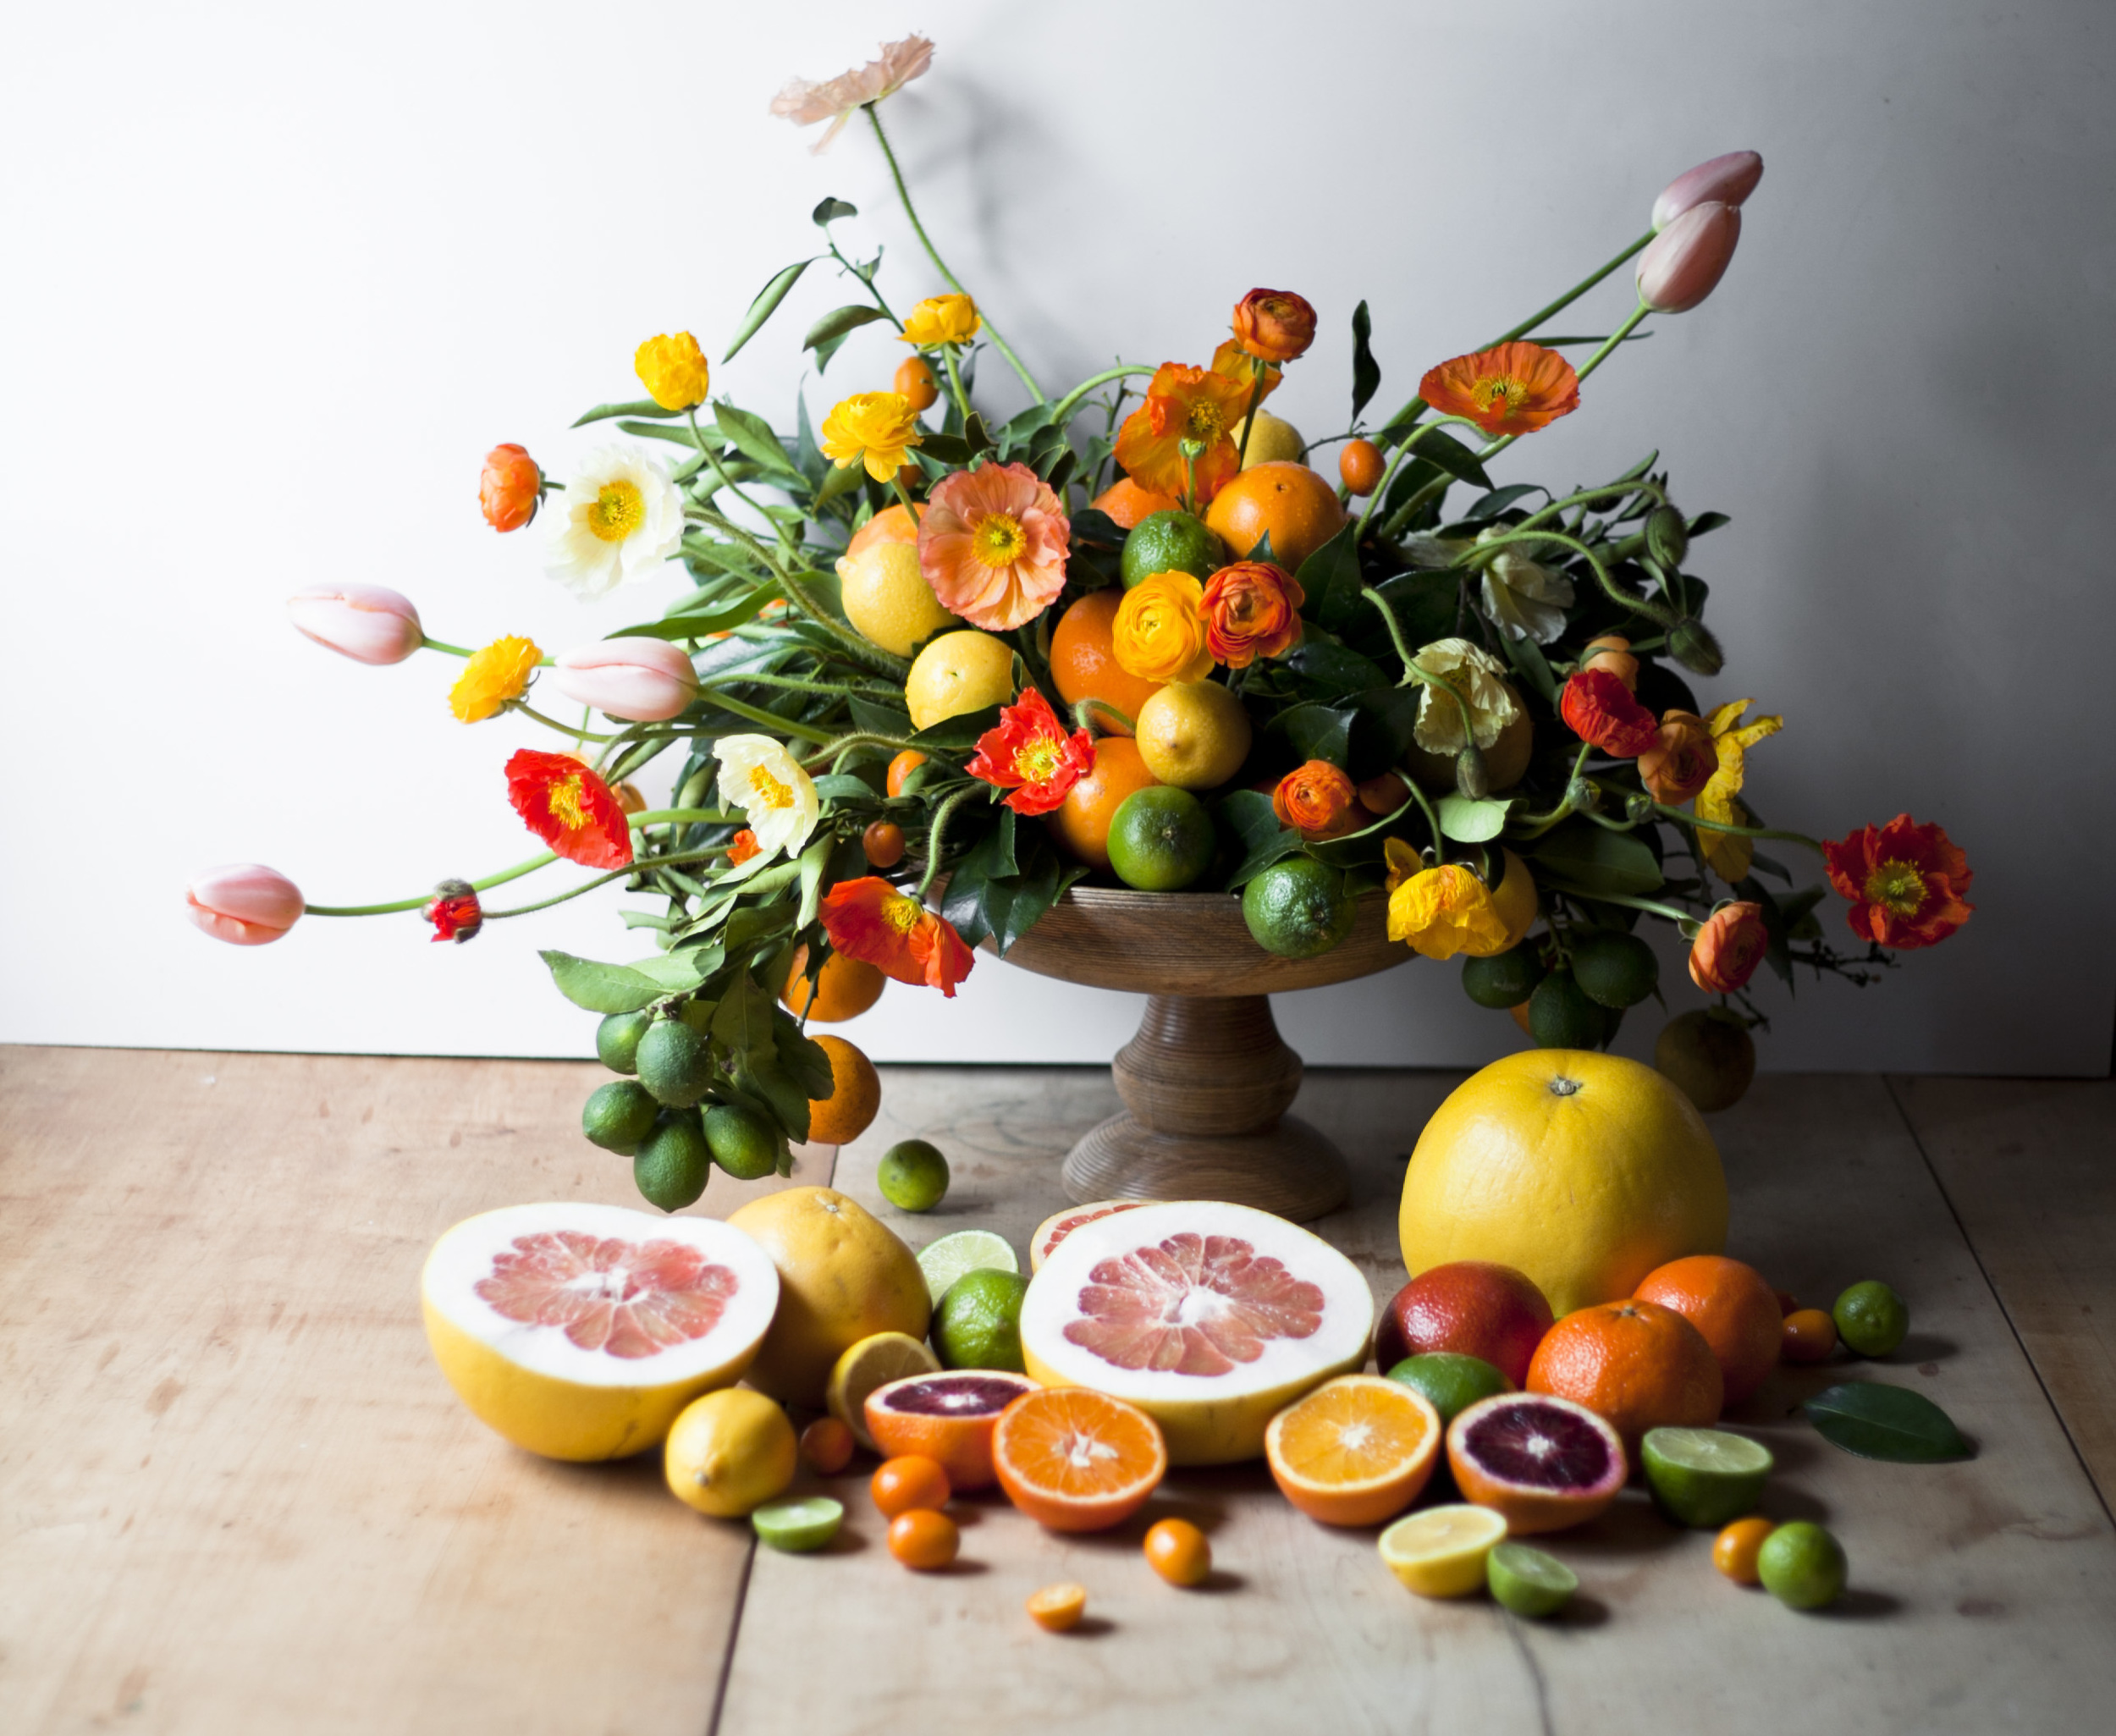 Styled Food Shoot: Winter Citrus